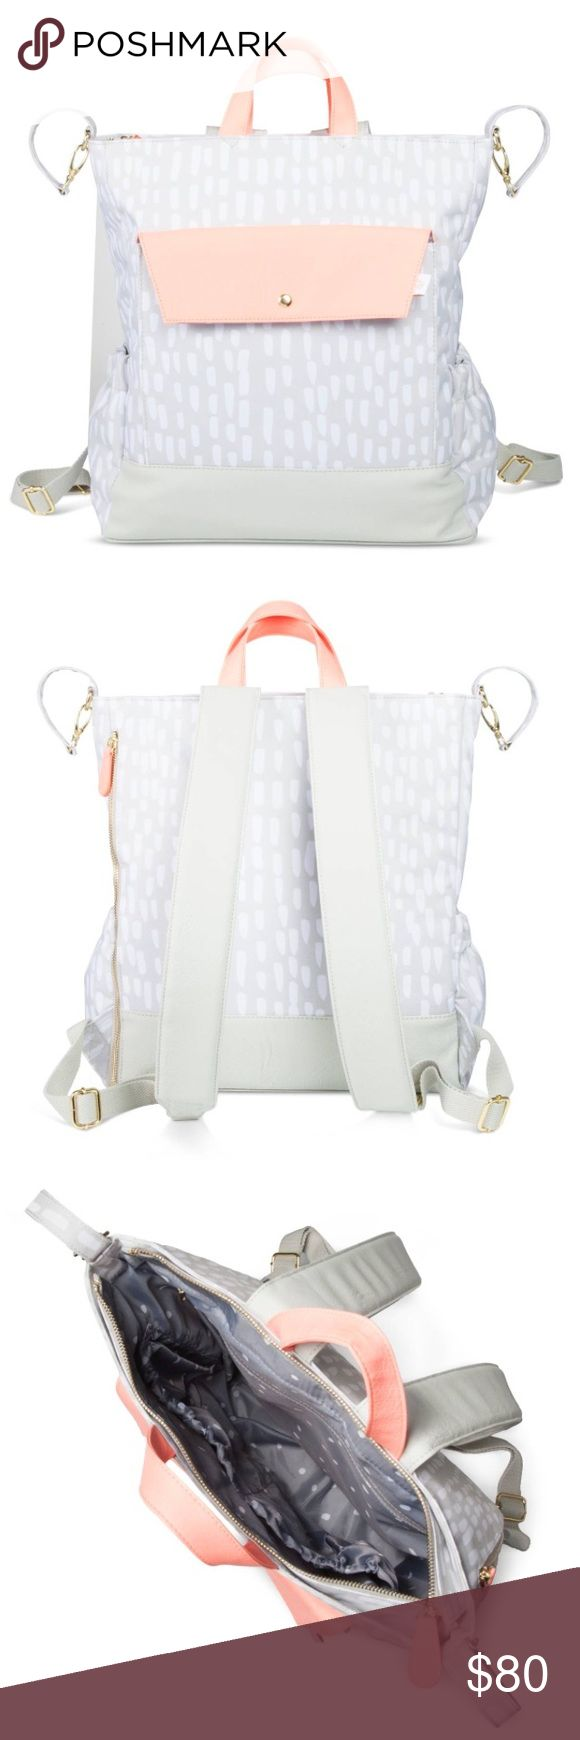 💜Backpack Diaper Bag💜 🎀Bag Type: Backpack Features: Backpack strap, Stroller strap, Zip Closure Material: Nylon Care and Cleaning: Wipe Clean with a Dry Cloth Dimensions: 15 inchesH x 7 inchesW x 13.25 inchesD Weight: 1 pounds🎀 Bags Baby Bags